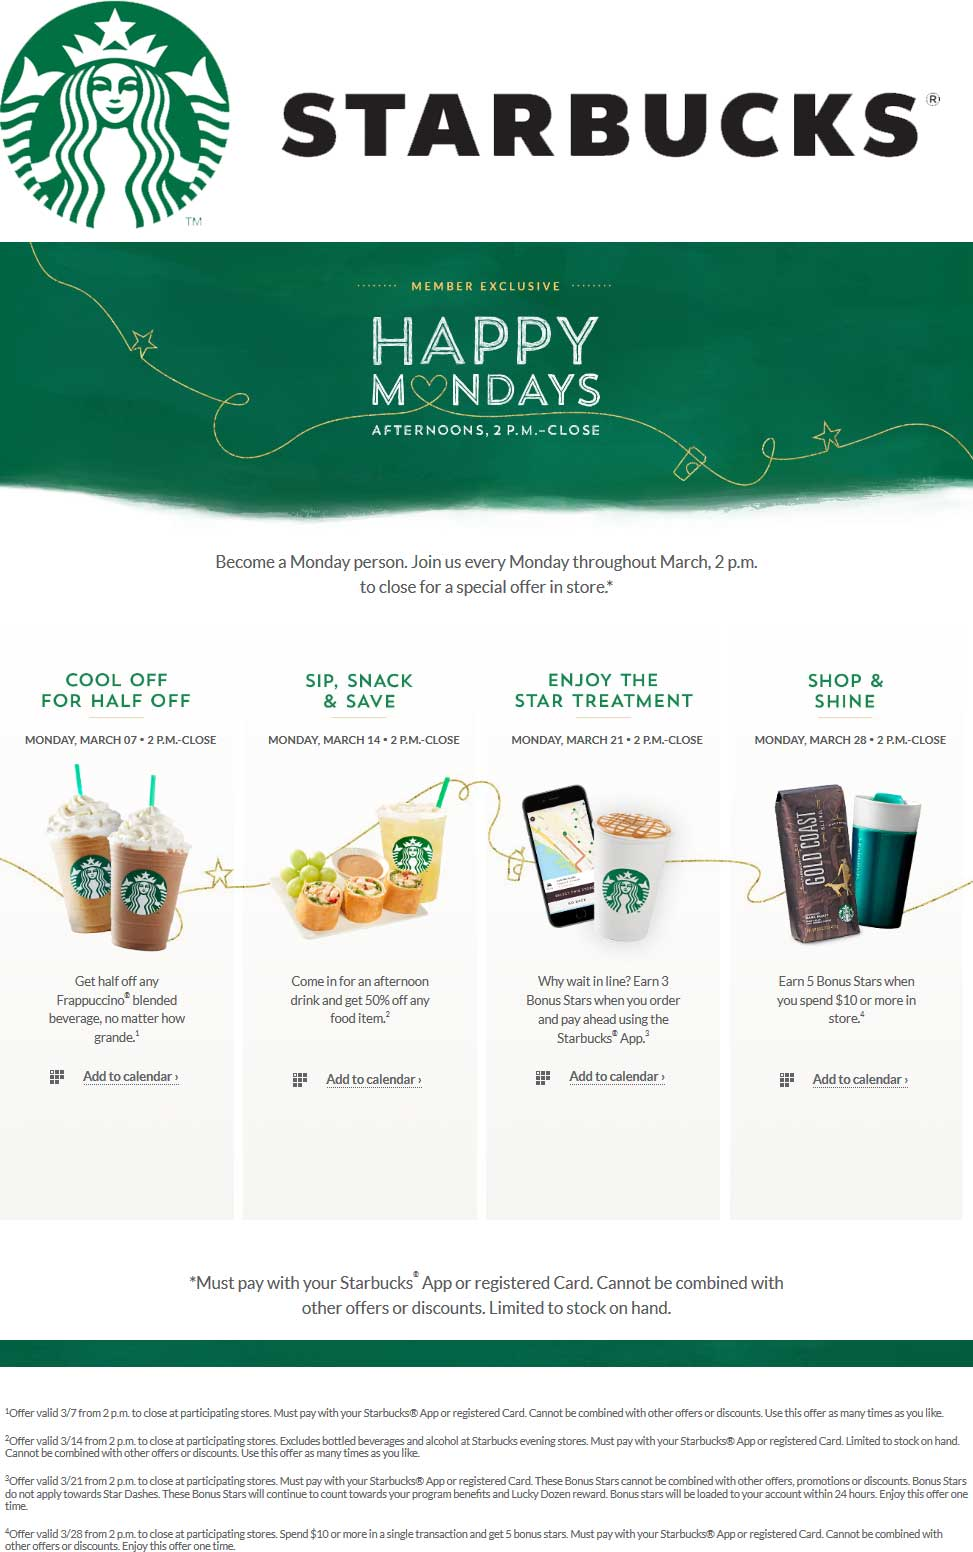 Starbucks Coupon March 2017 50% off Frappuccinos Monday after 2pm at Starbucks